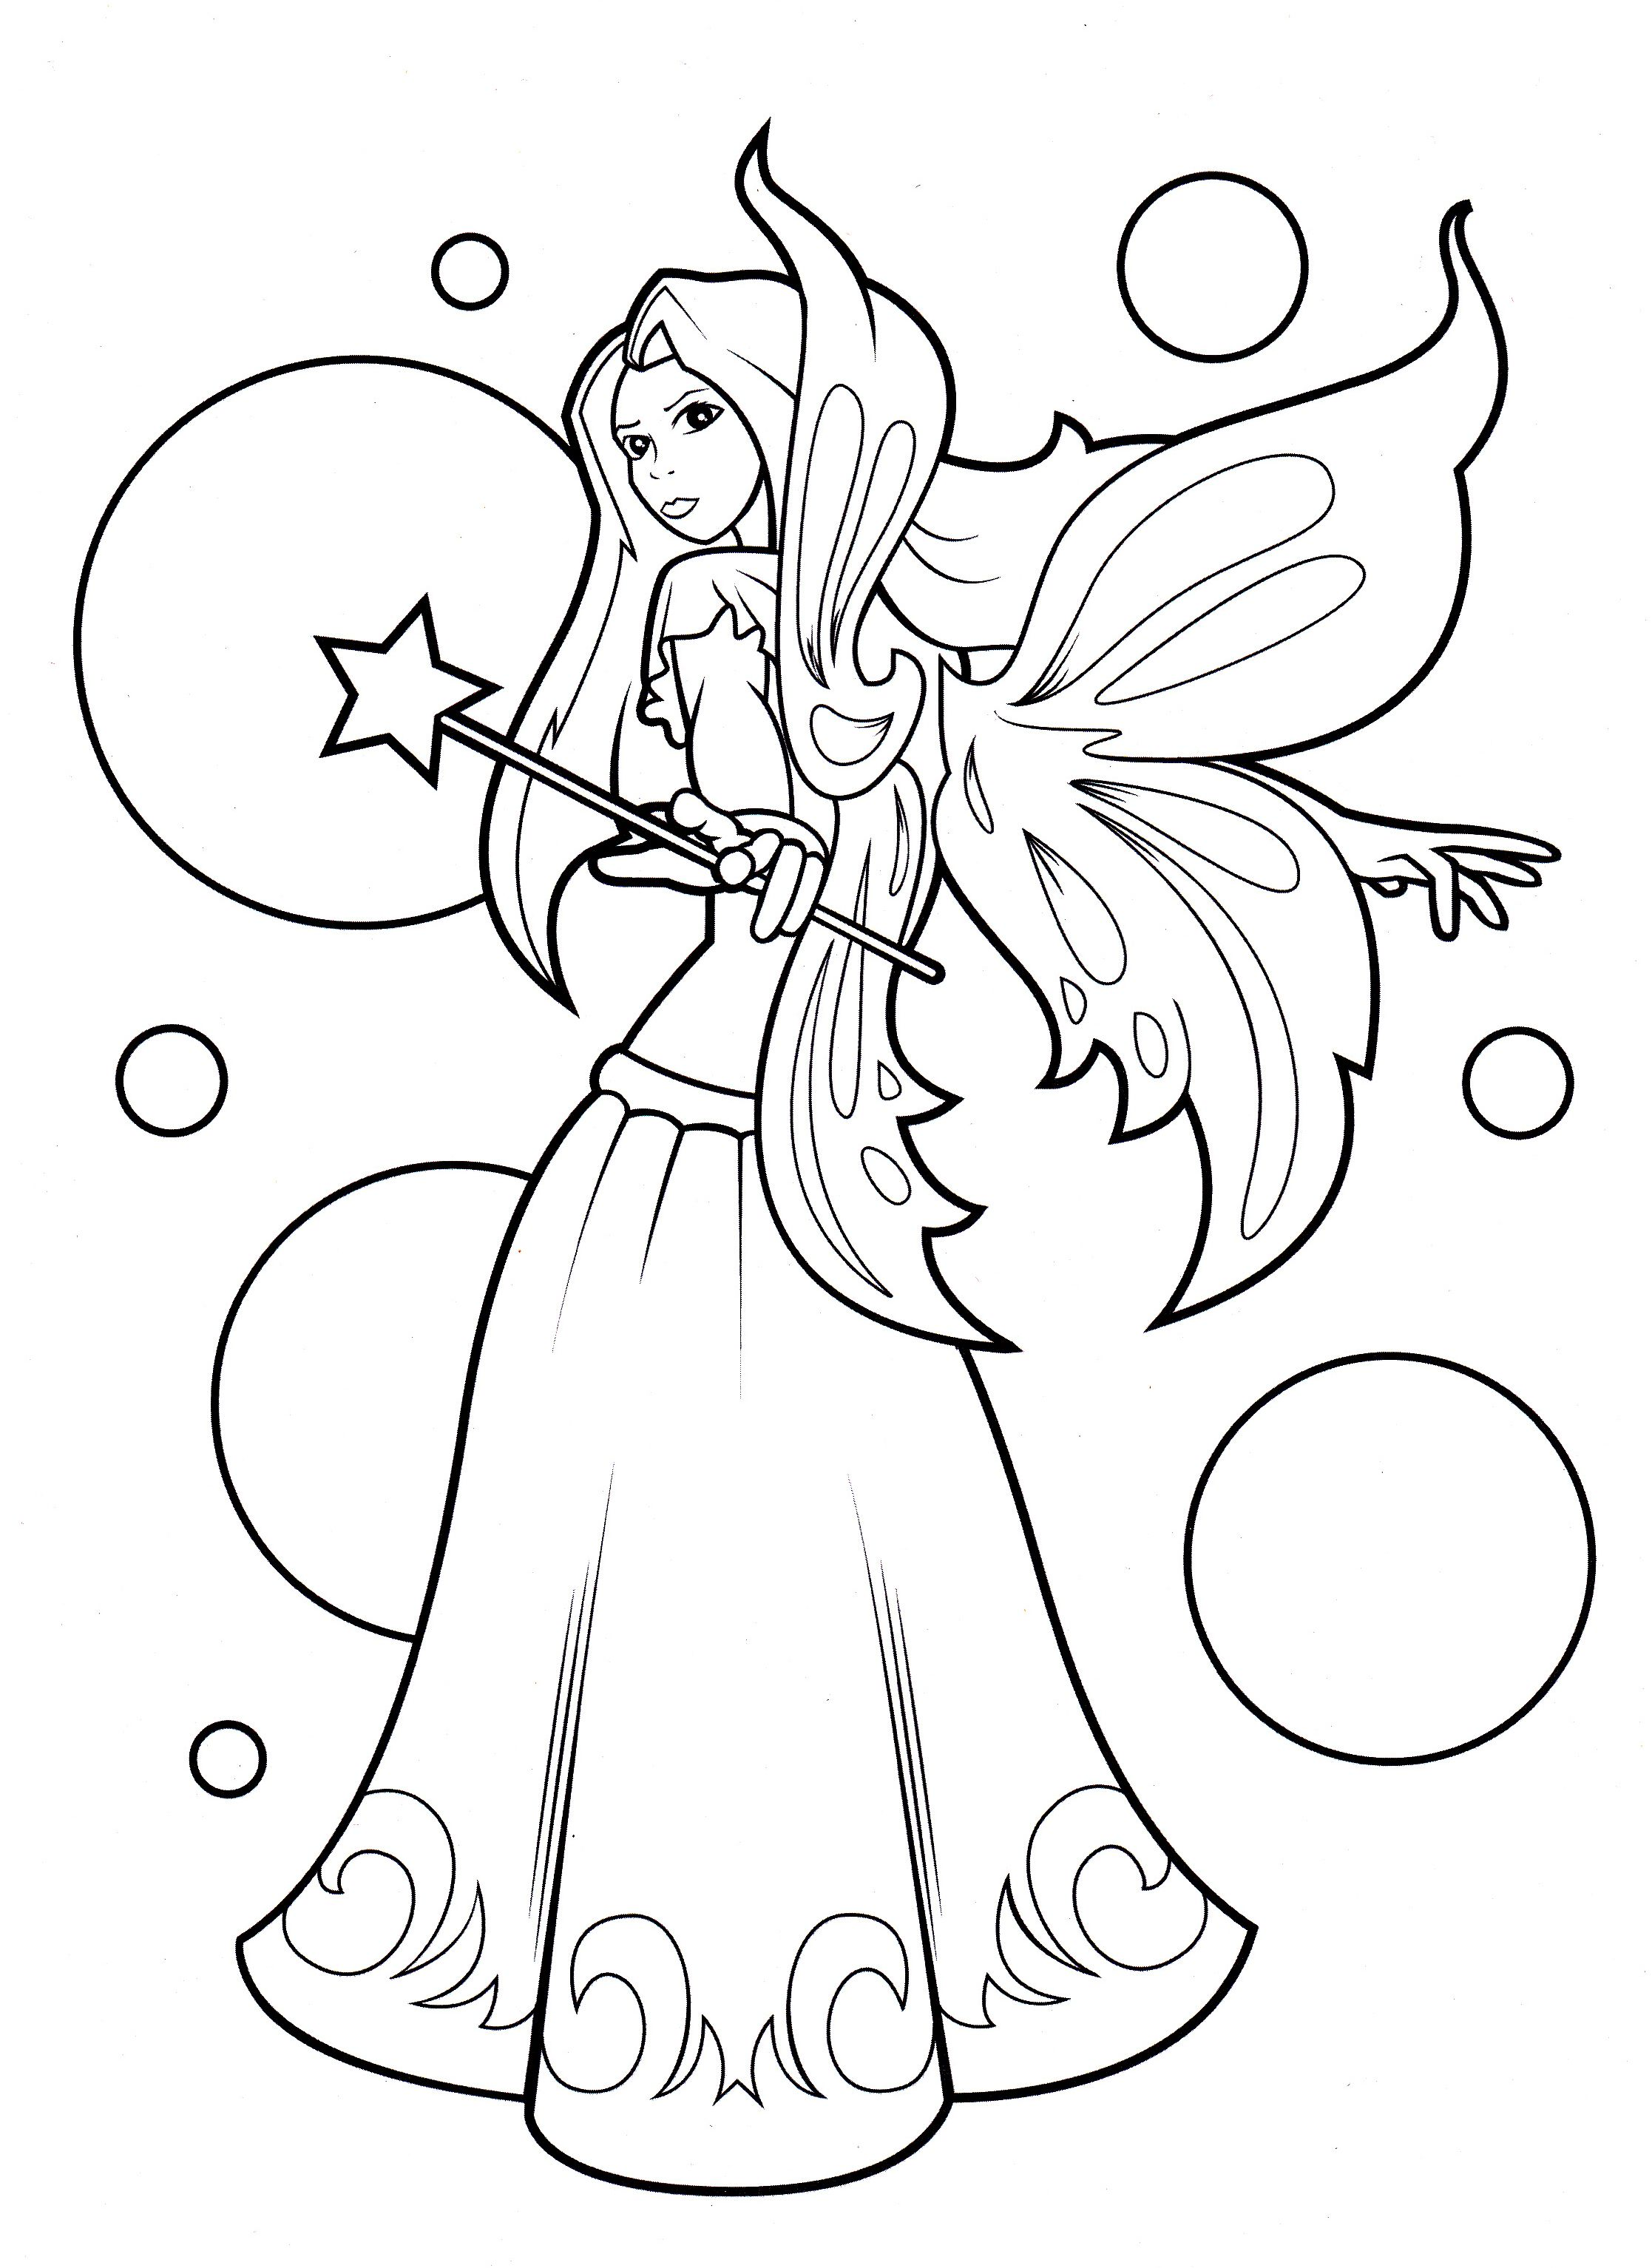 Fairy from Lilly Butterfly coloring book | Coloring pages ...